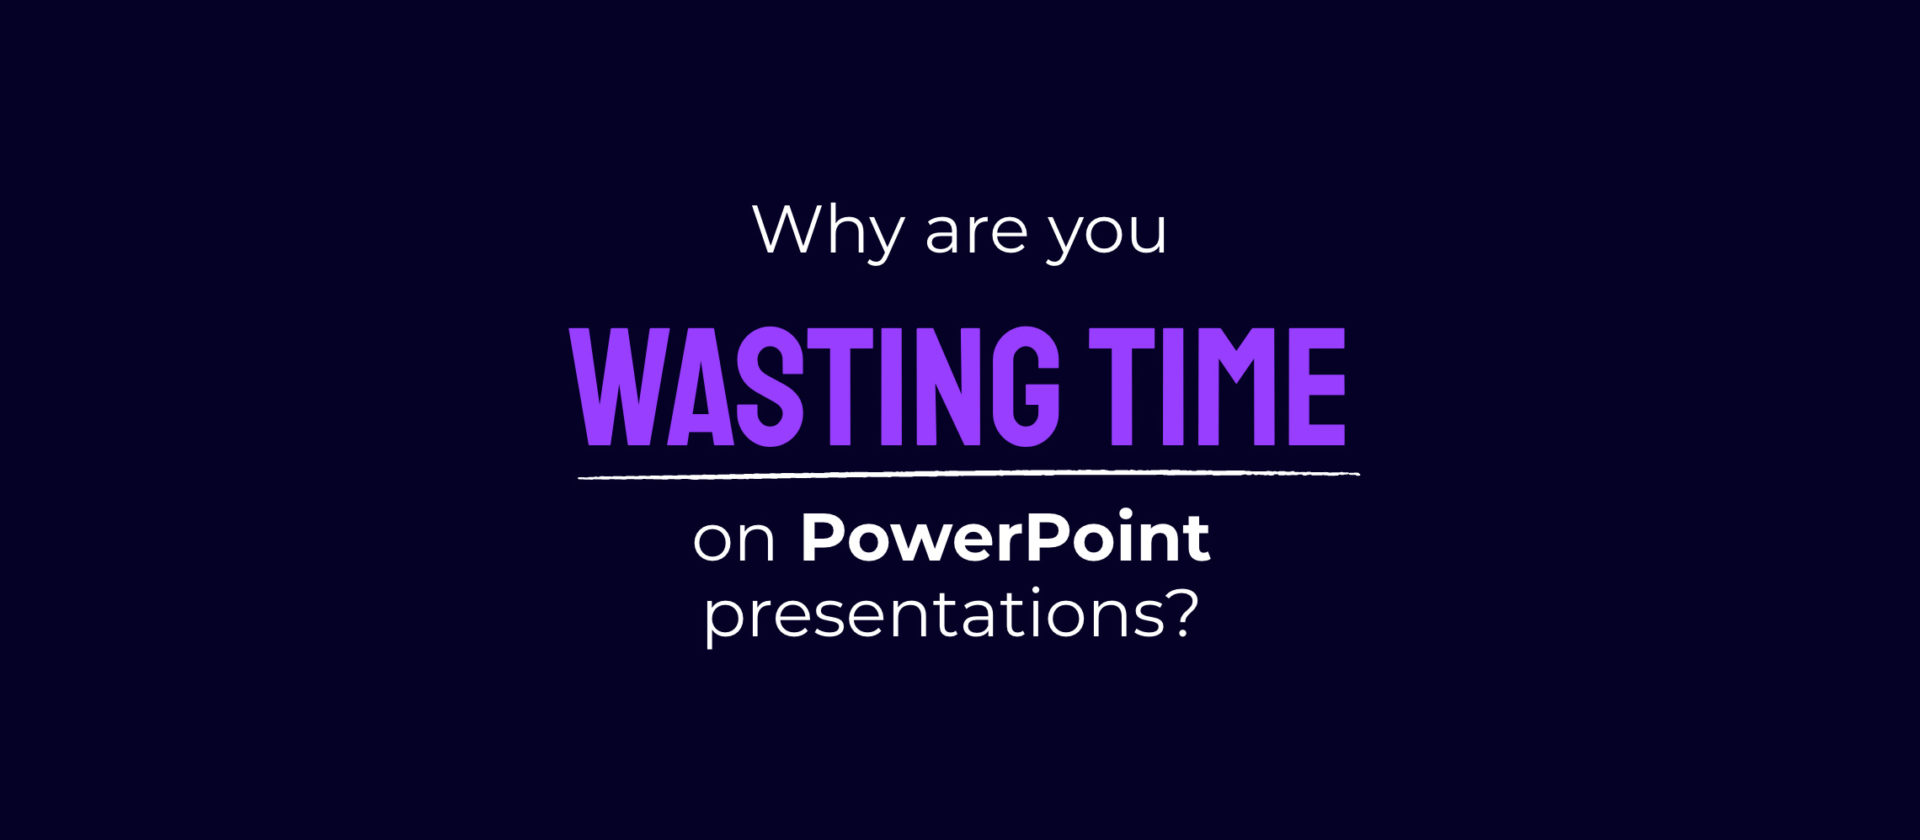 Why are you wasting time on PowerPoint presentations?